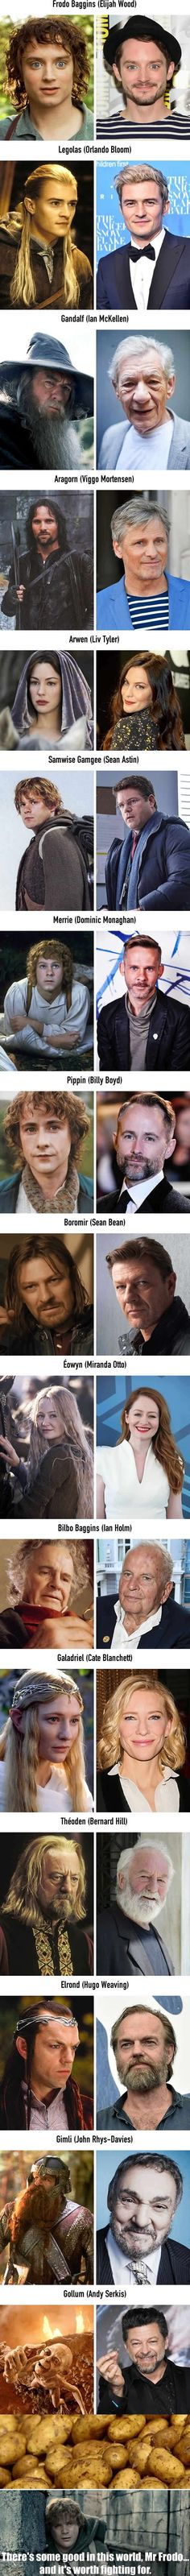 The Lord of the Rings 15 Years Later - 9GAG